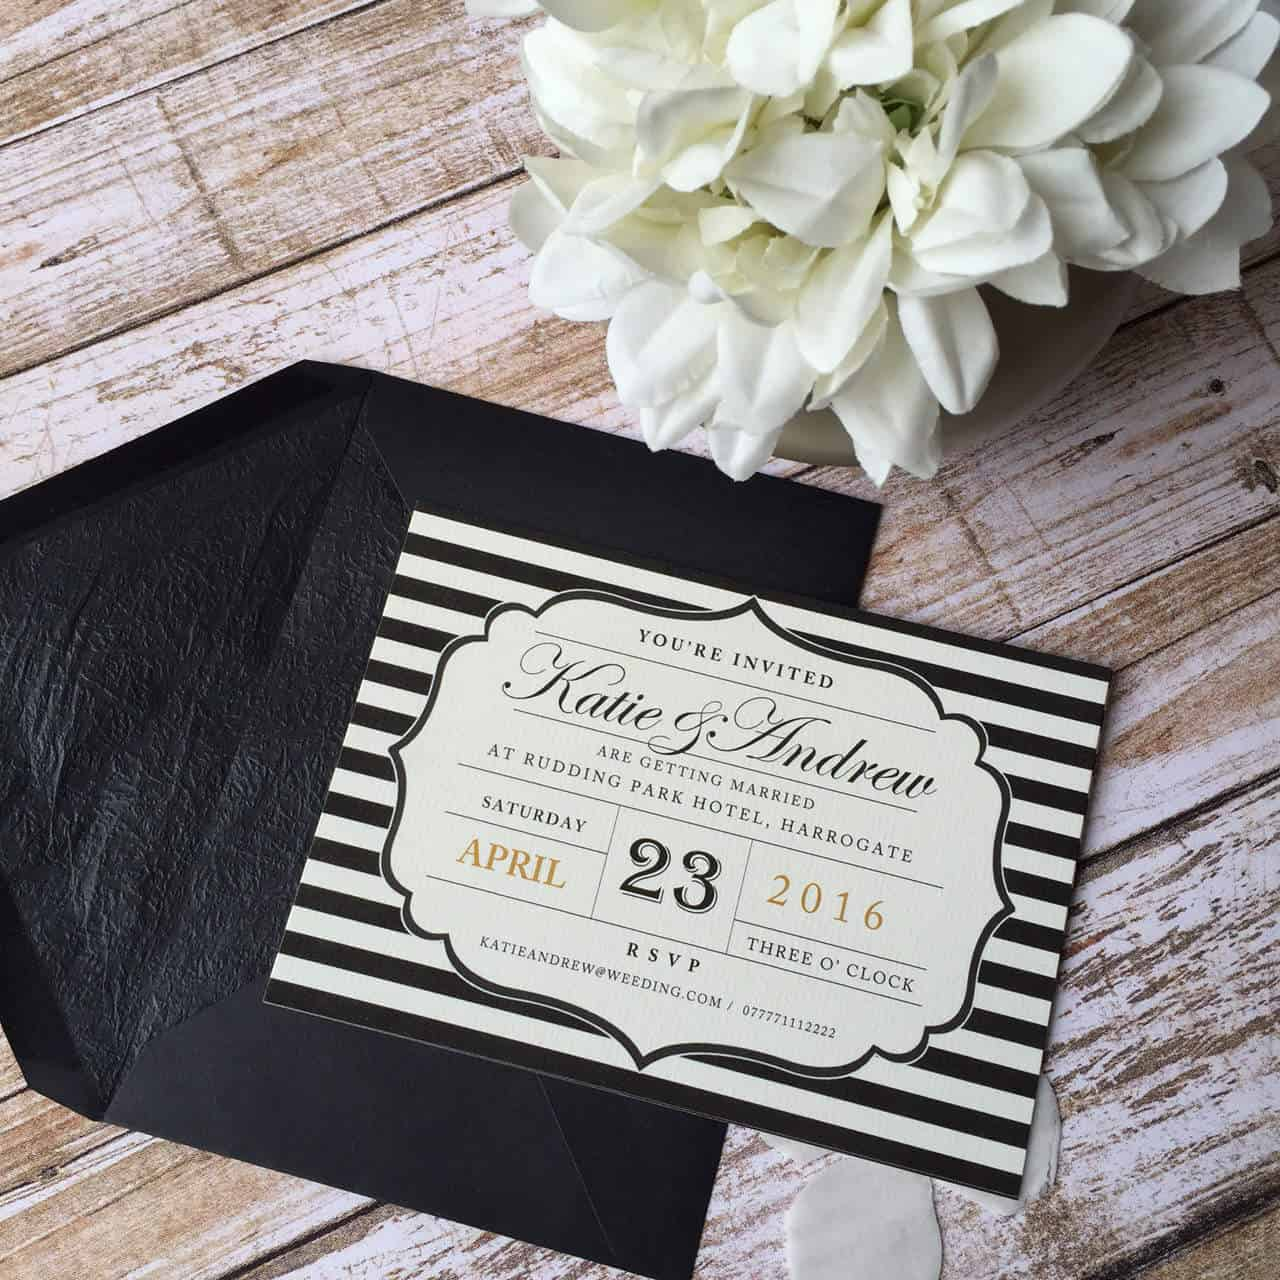 Postcard Style Wedding Invitations |